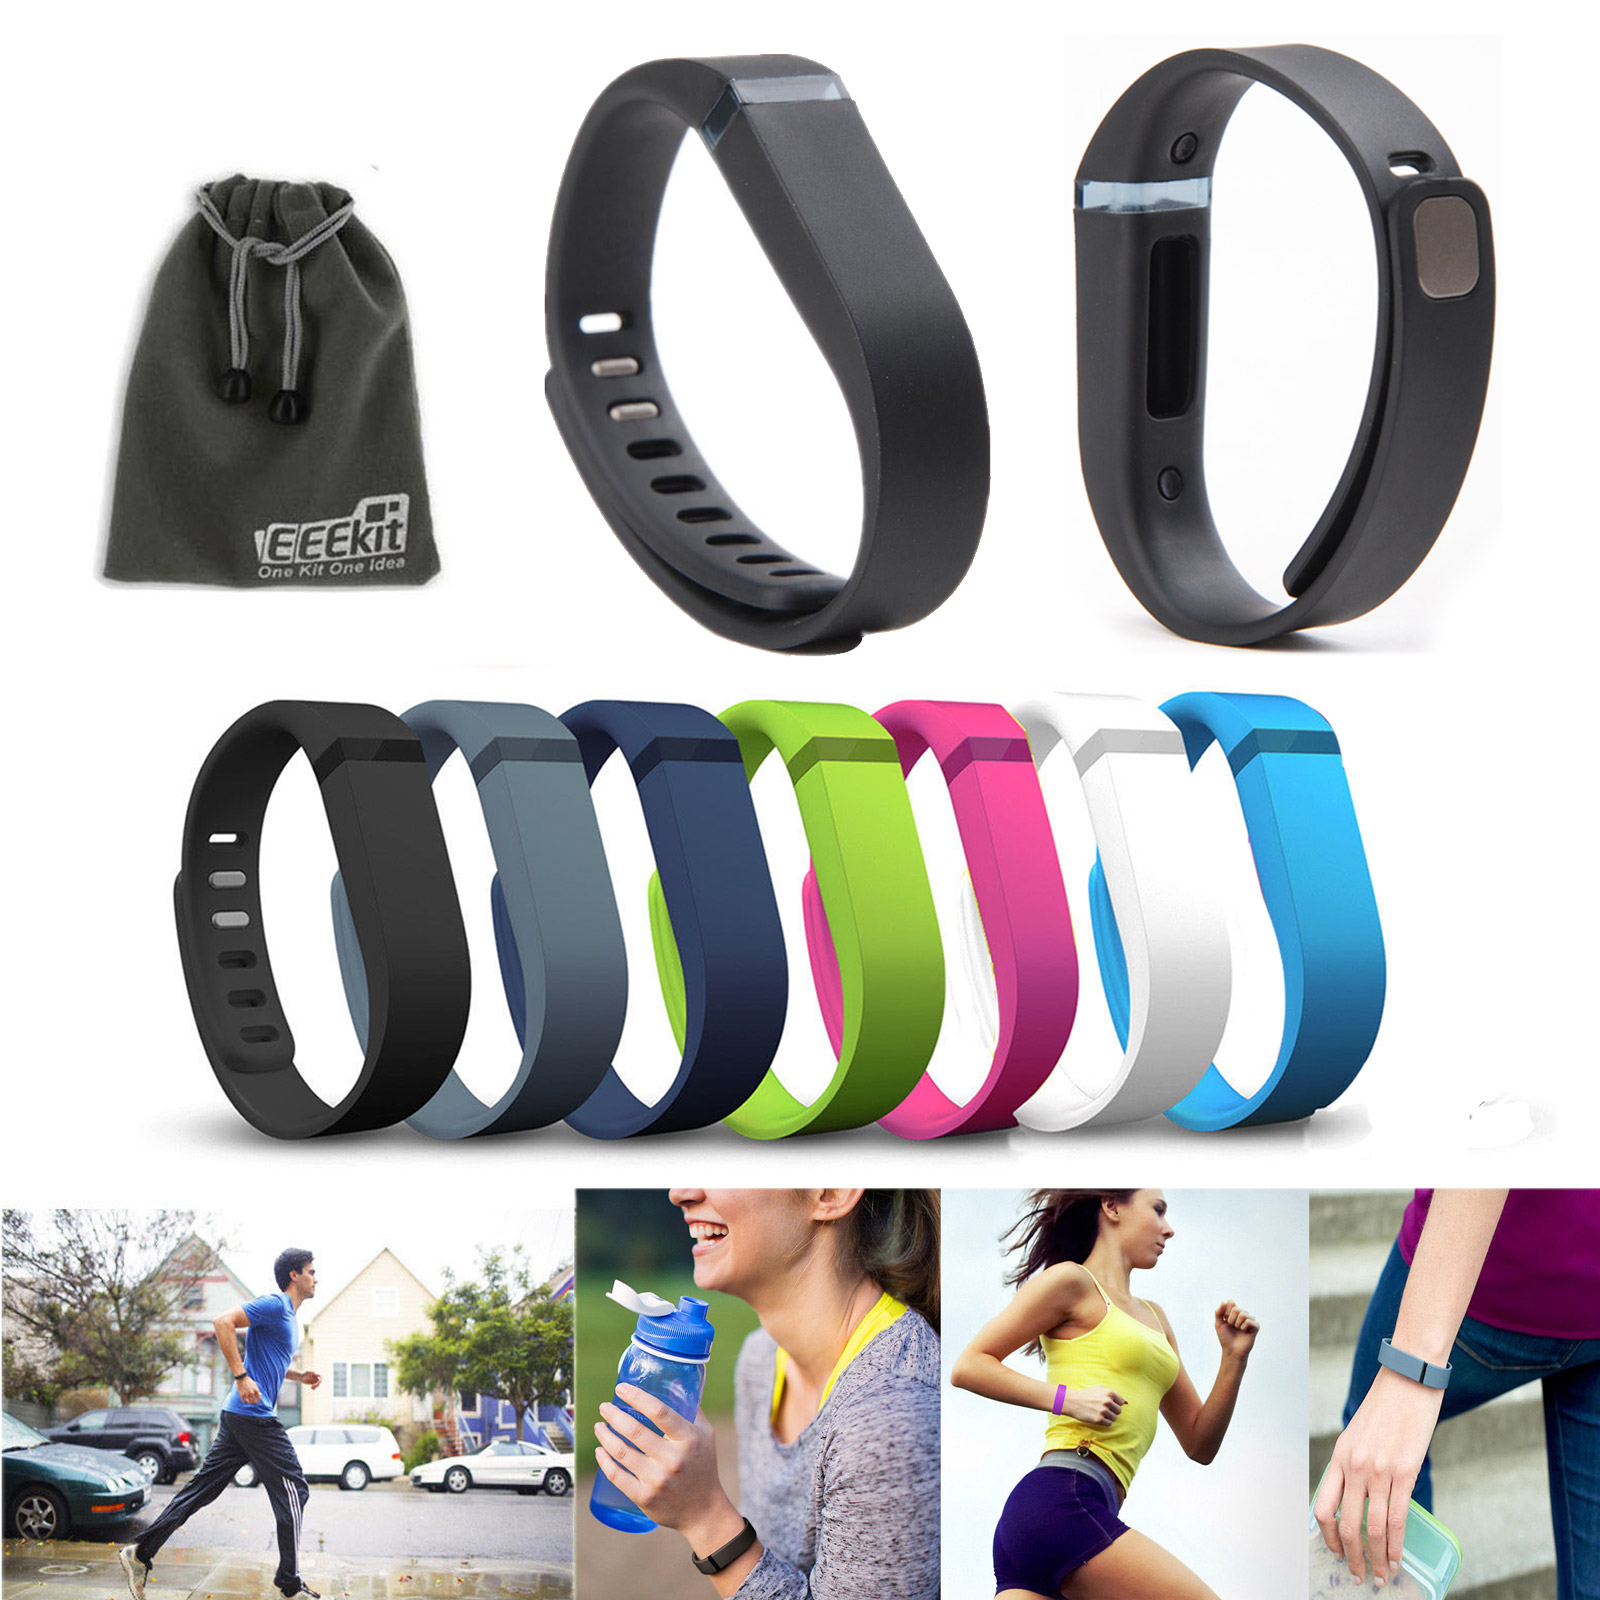 EEEKit 7 Pcs Coloreful LARGE Size Replacement Wrist Band w/Clasp for Fitbit Flex Bracelet